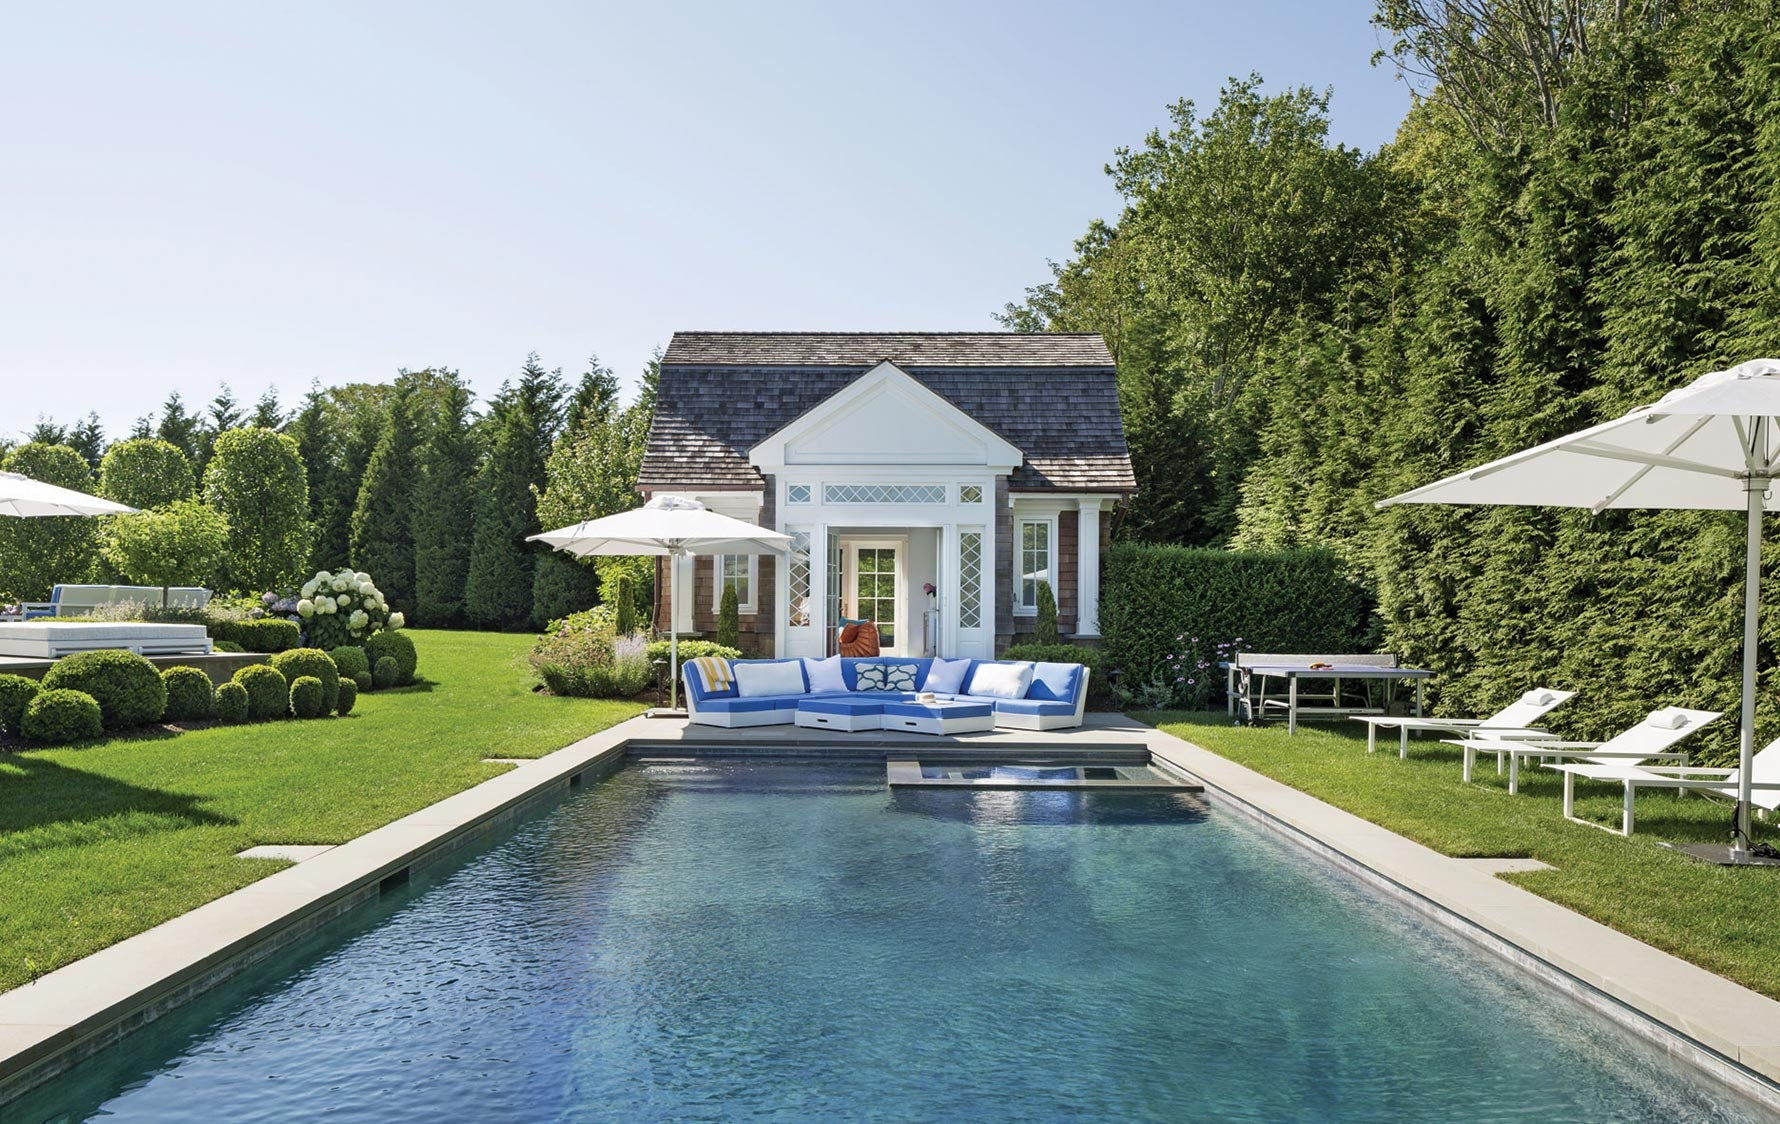 Pool House Ideas, Outdoor Space Ideas | Read more in The Luxurist | LuxDeco.com